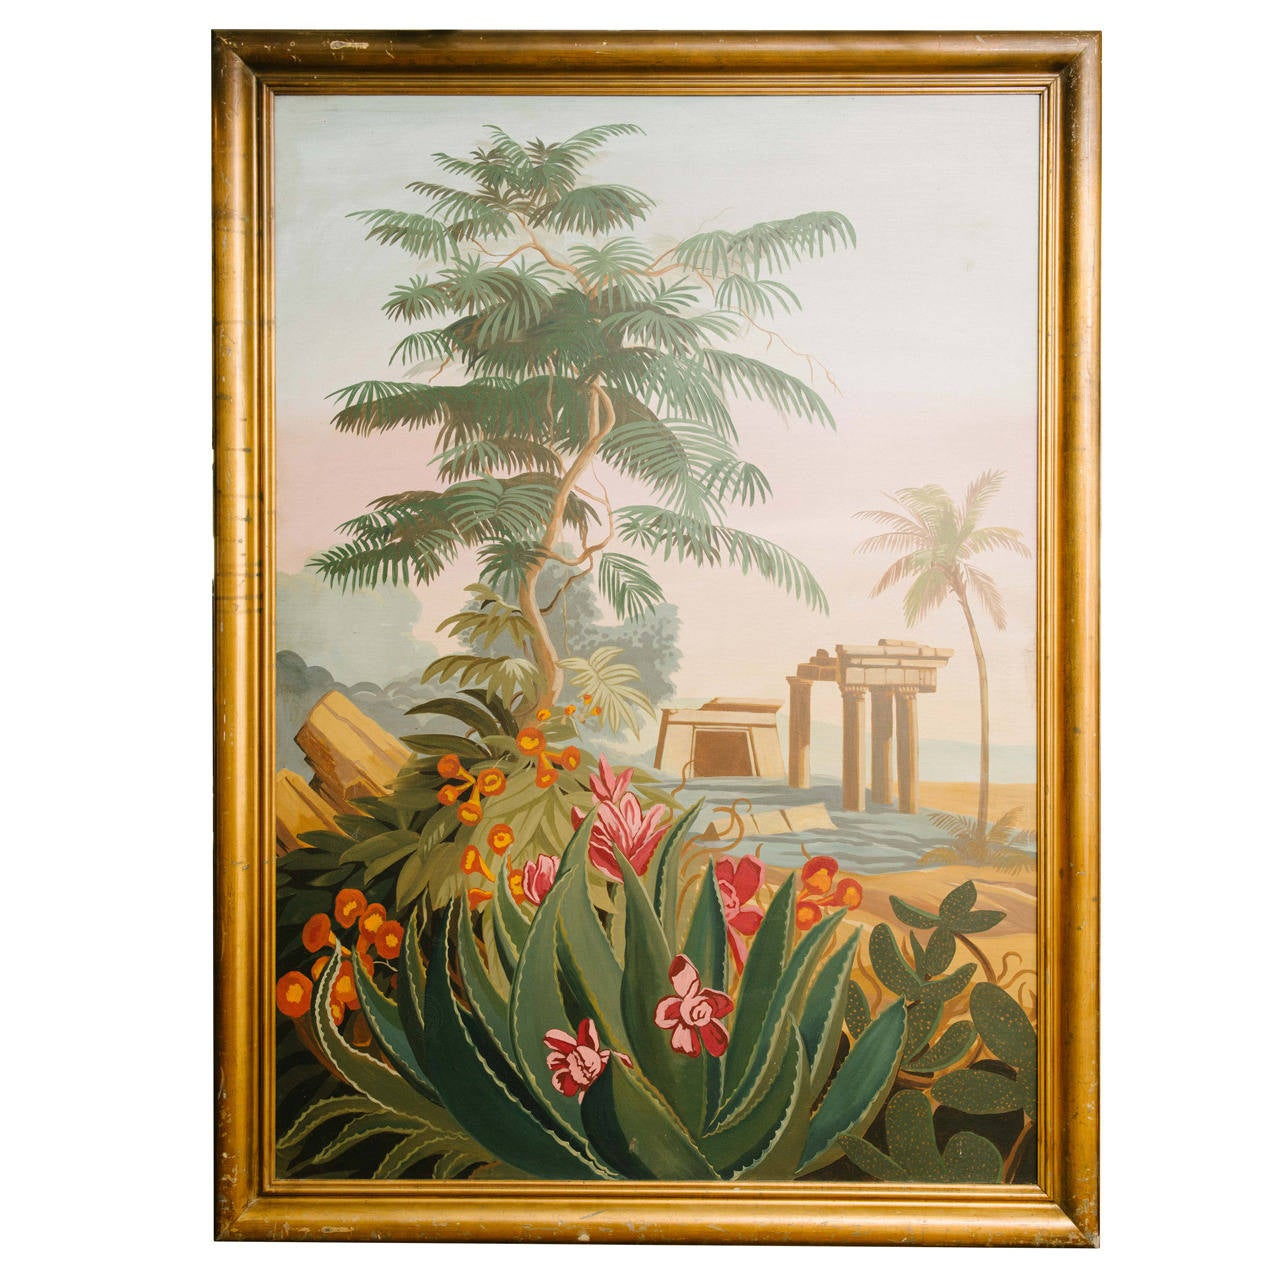 Vintage el dorado mural scene painting for sale at 1stdibs for Classic mural painting